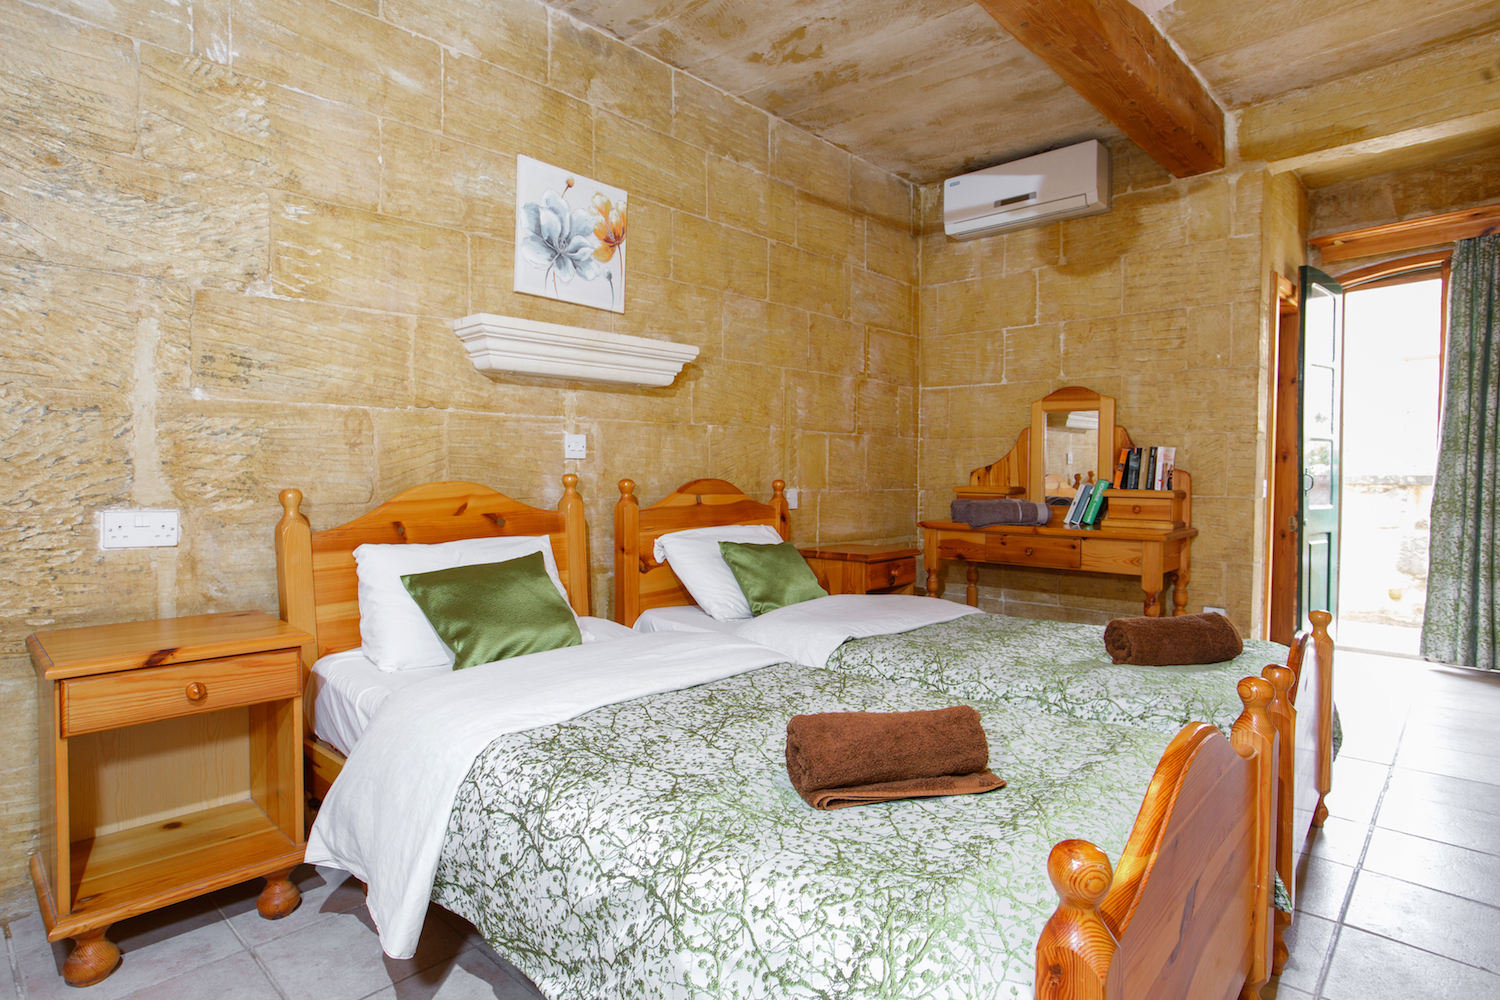 Ensuite twin bedroom no.3 with spacious balcony overlooking the street